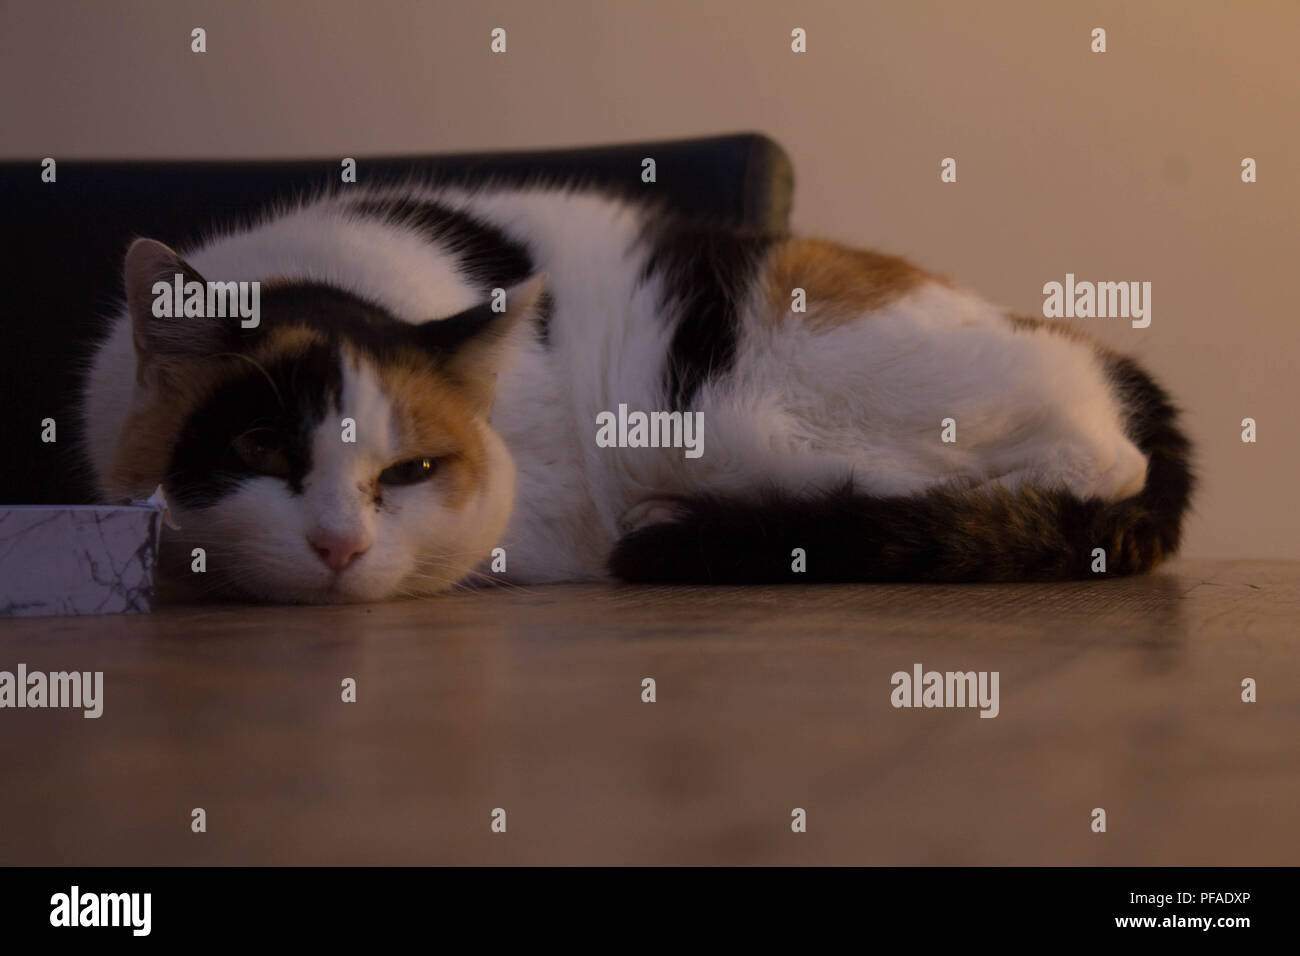 Cat sleeping on the table - Stock Image